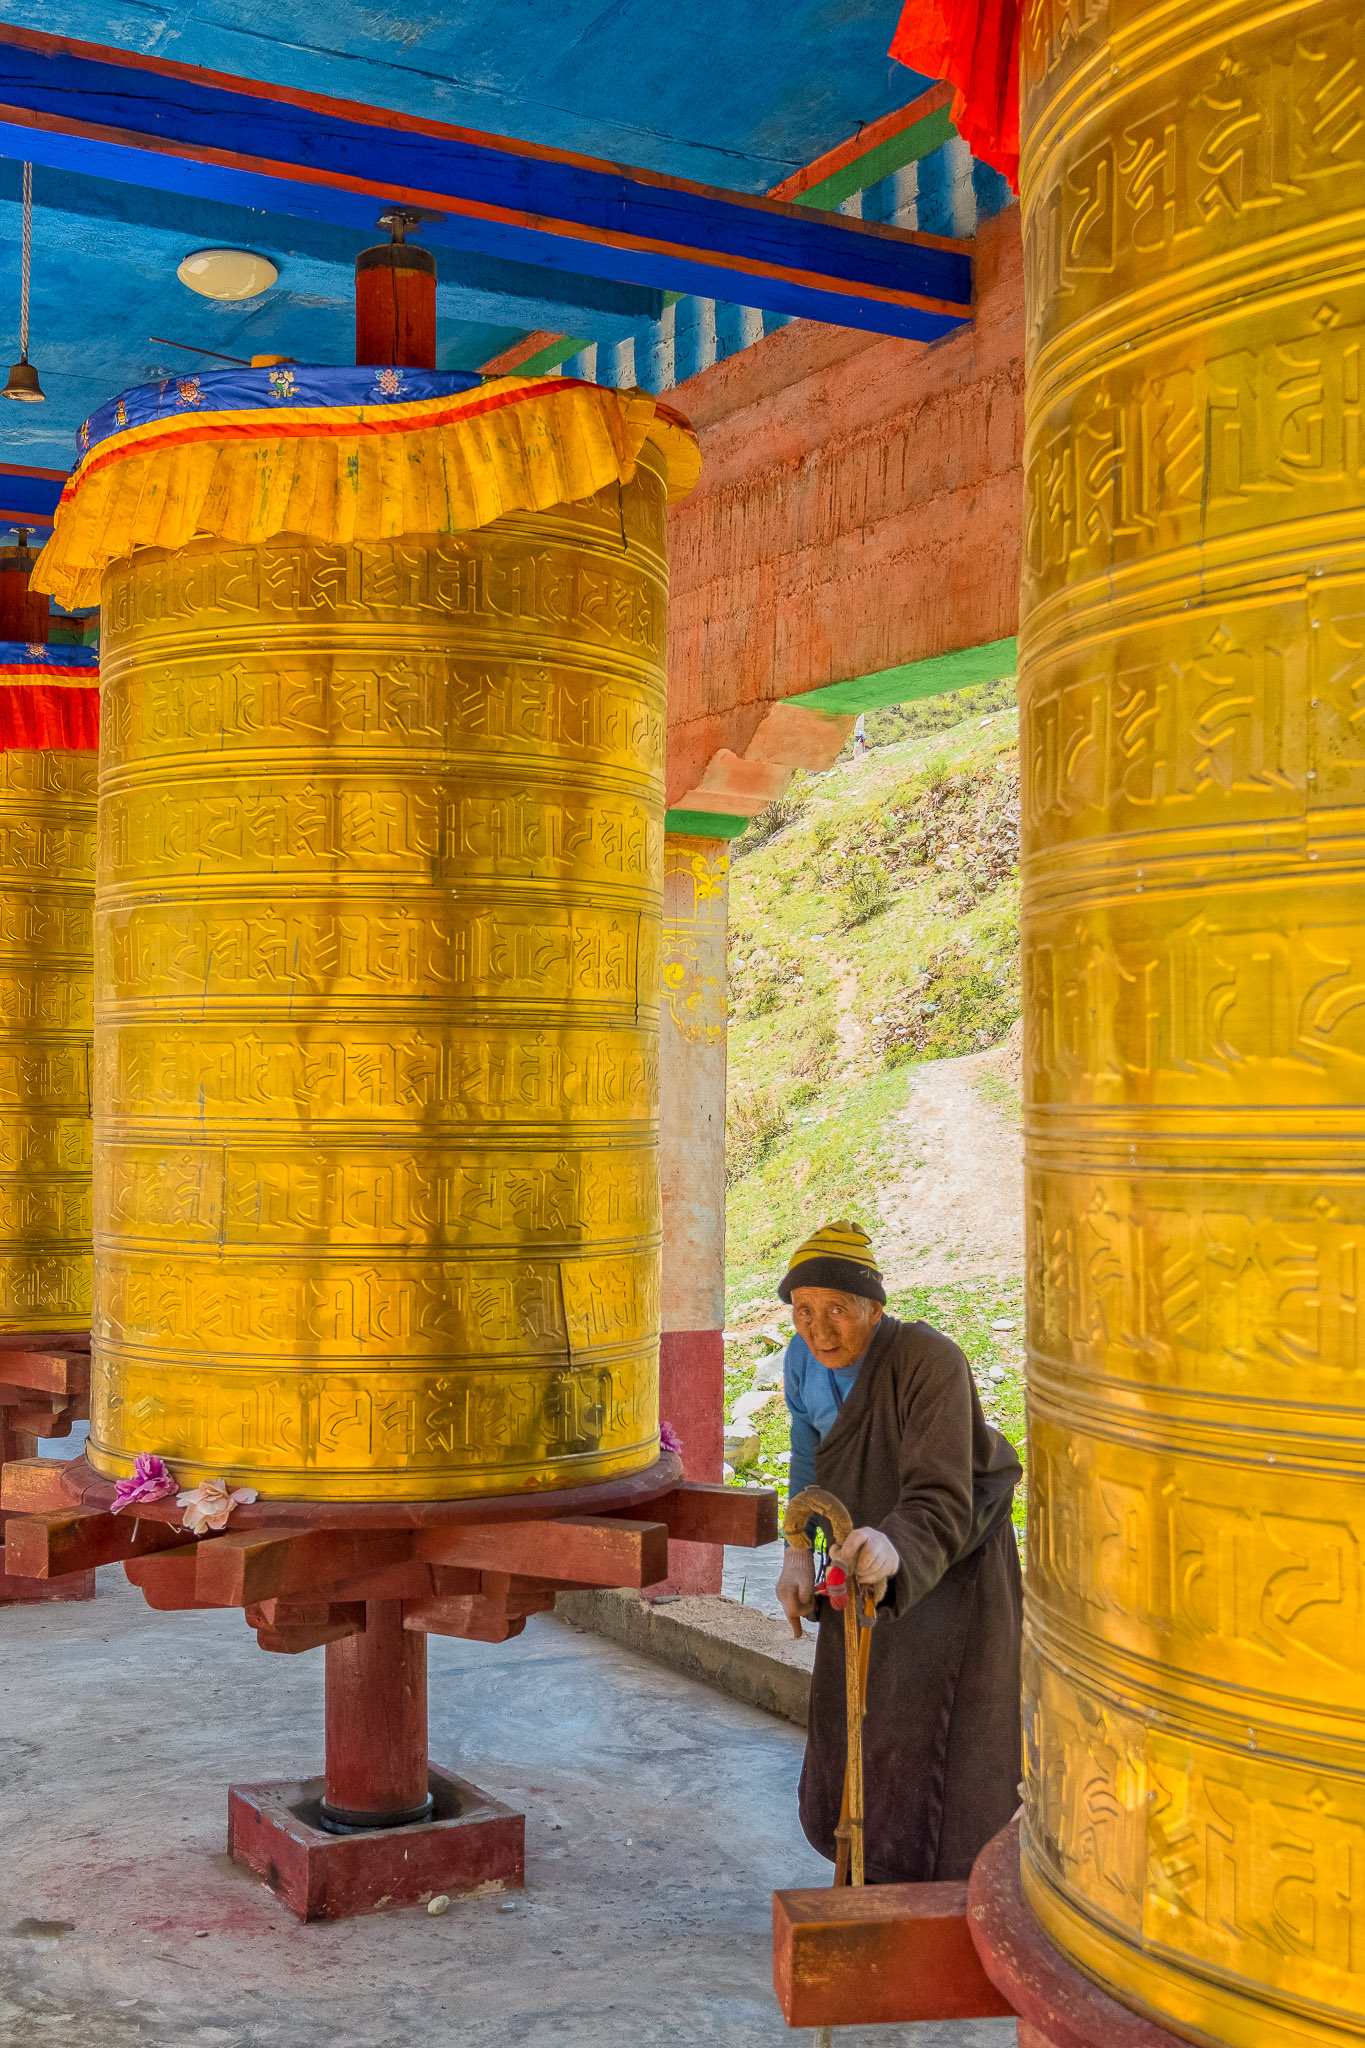 20170527_prayer-wheel_4385.jpg